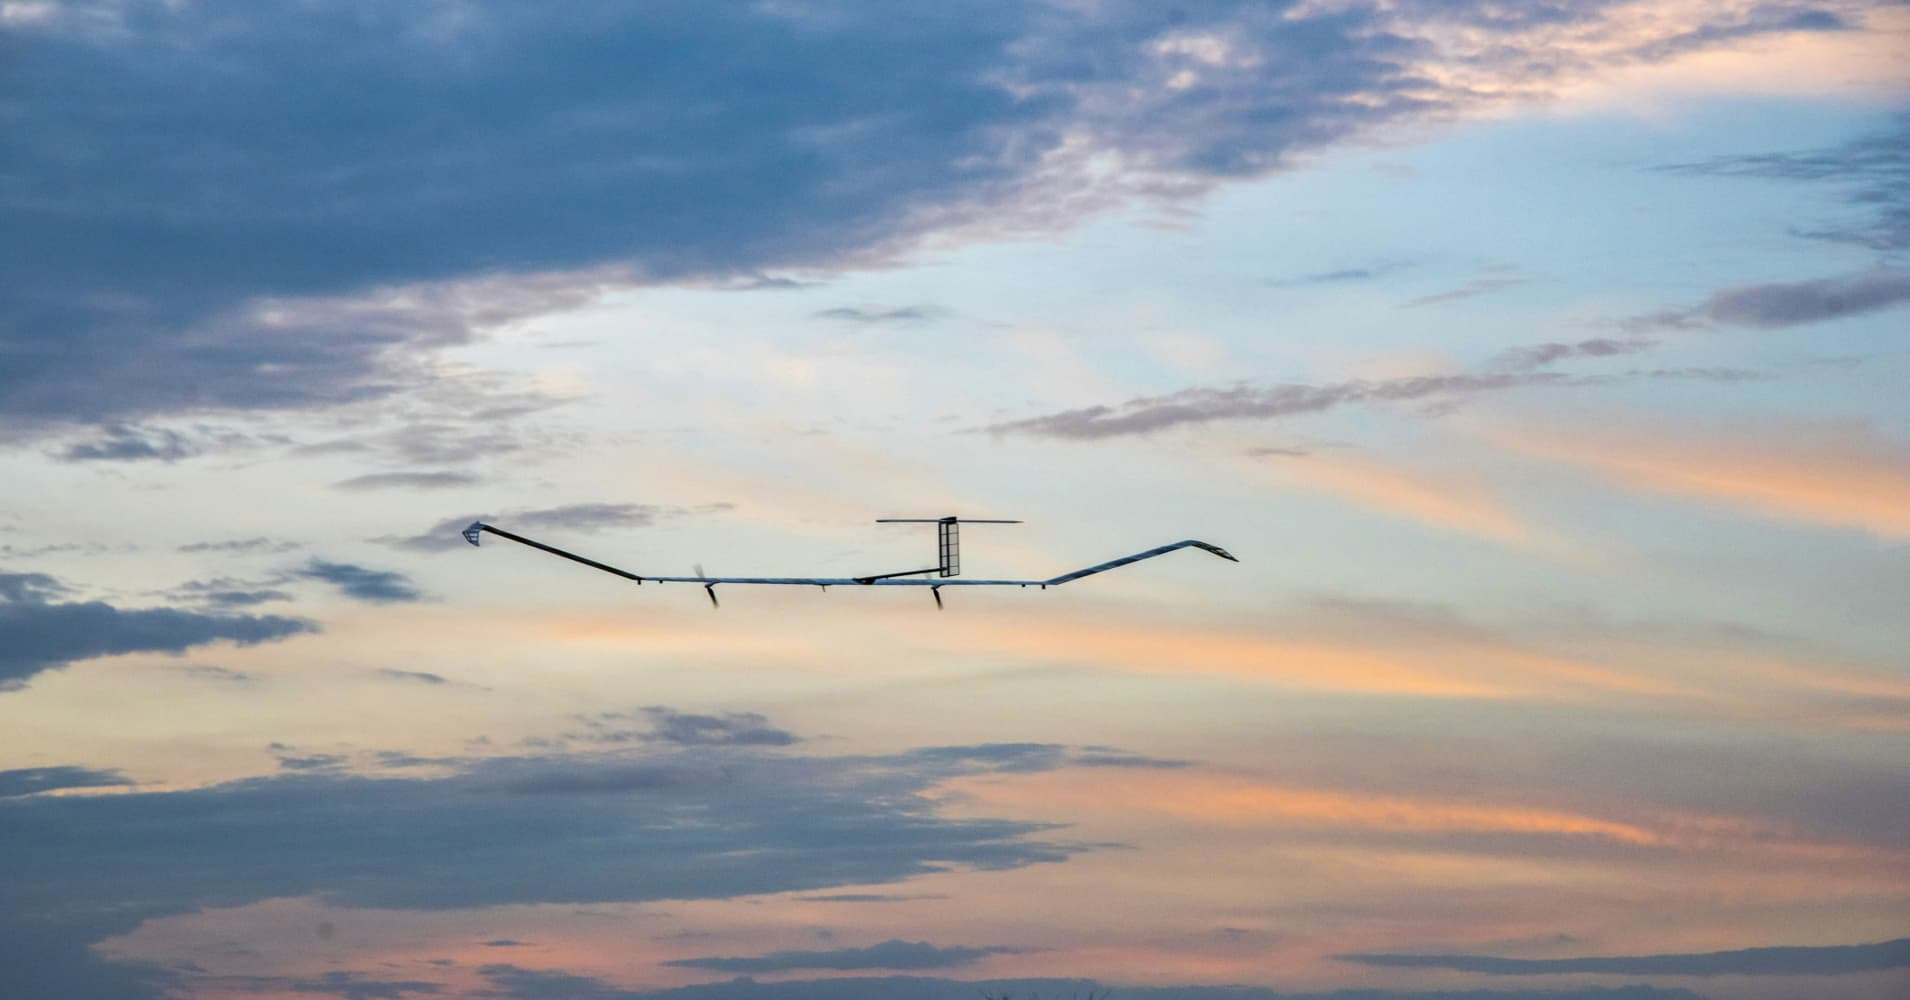 Airbus' solar-powered aircraft just flew for a record 26 days straight